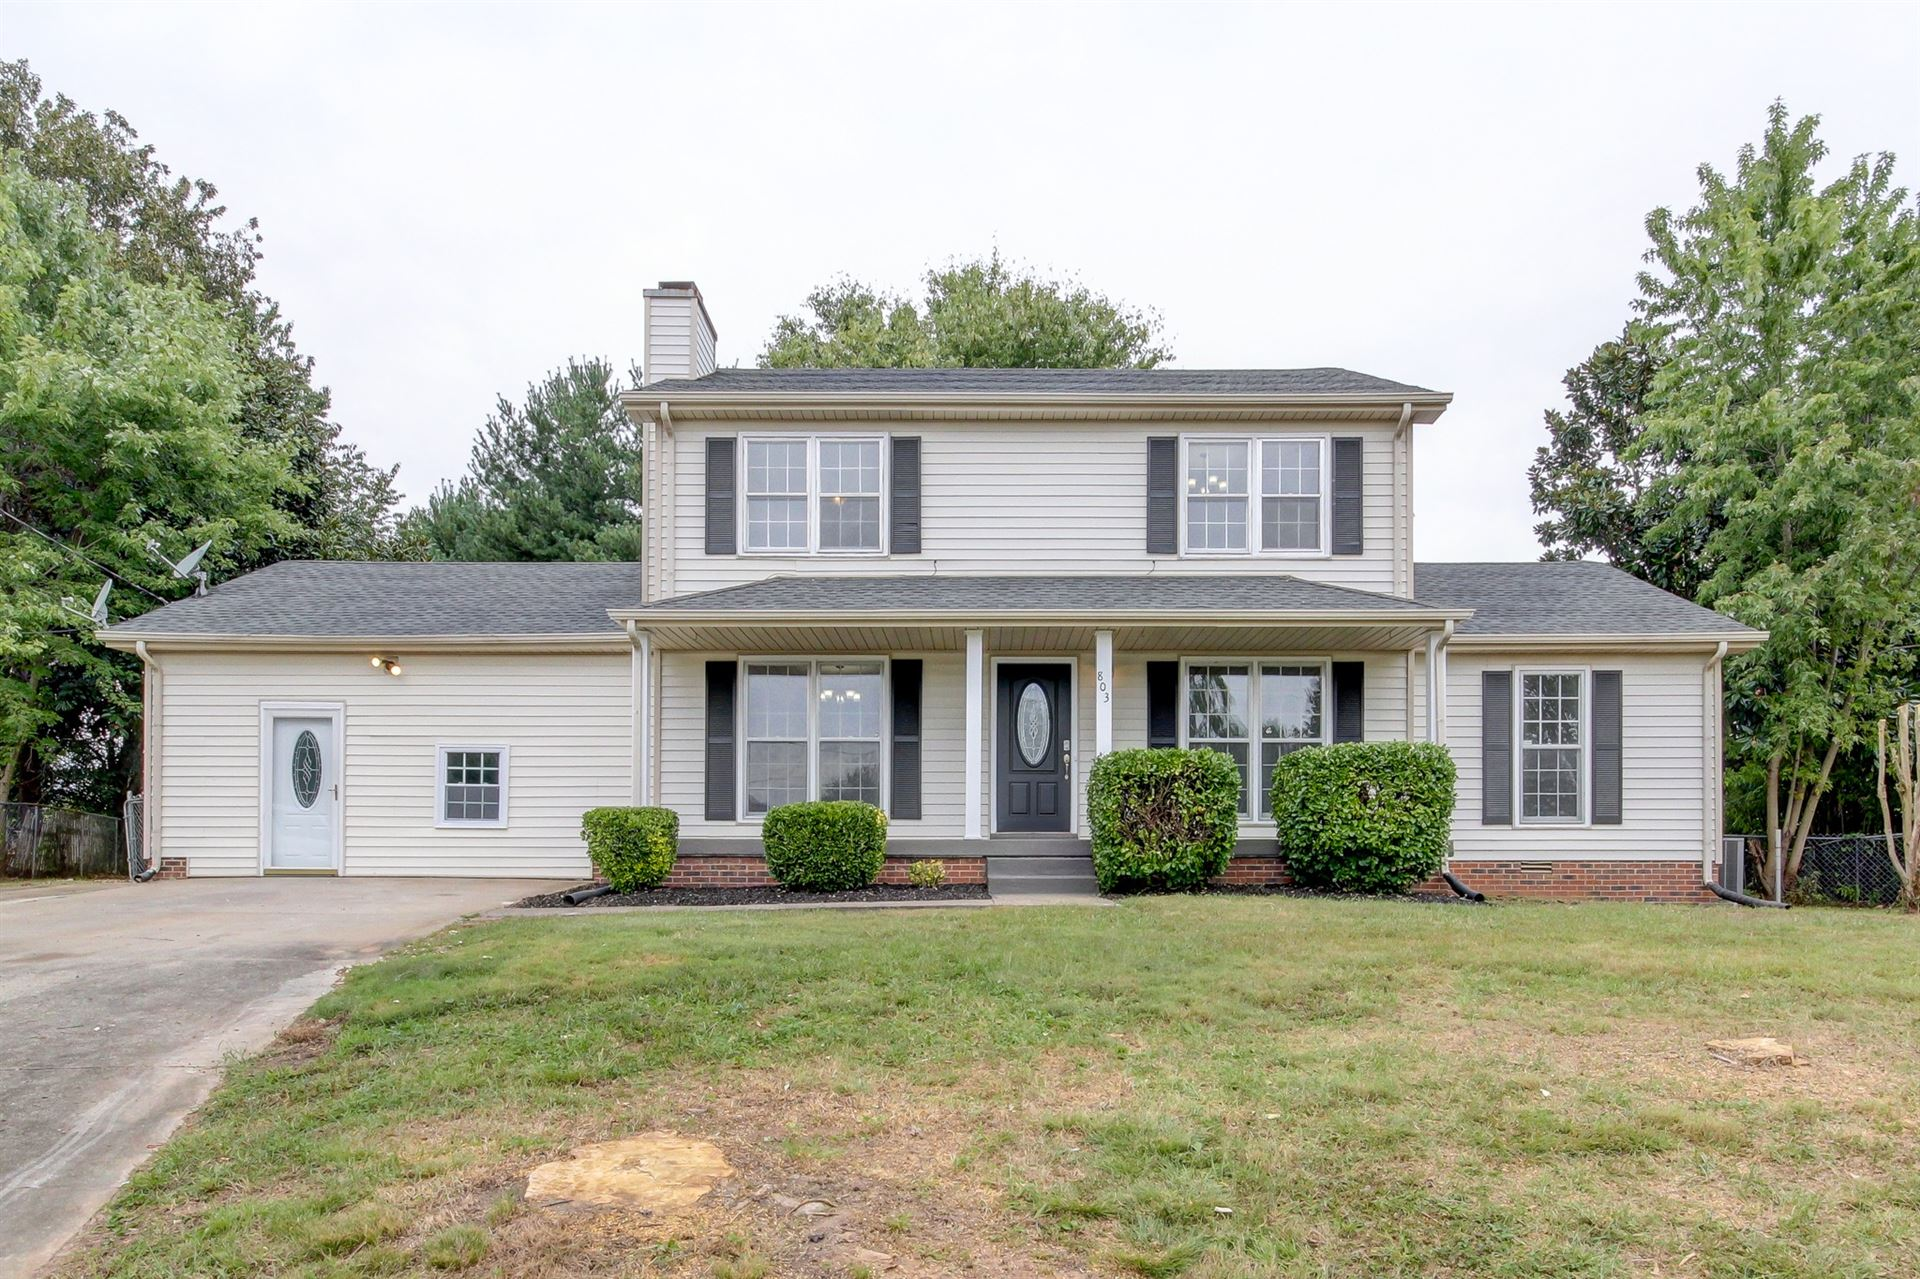 803 Parkview Ct, Clarksville, TN 37042 - MLS#: 2190949